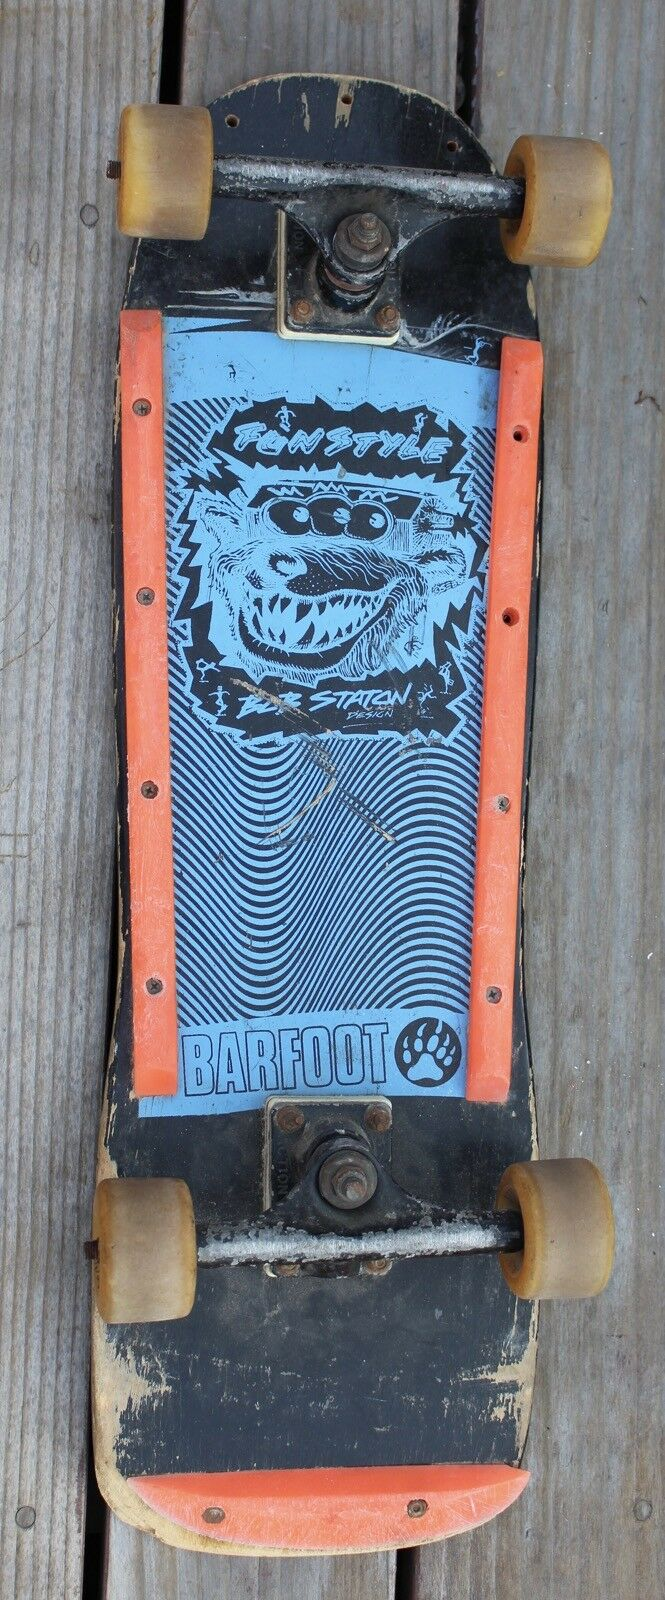 Rare Vintage Barfoot Bob Staton Design Fun Free Style S  board Complete Board  cheap and high quality